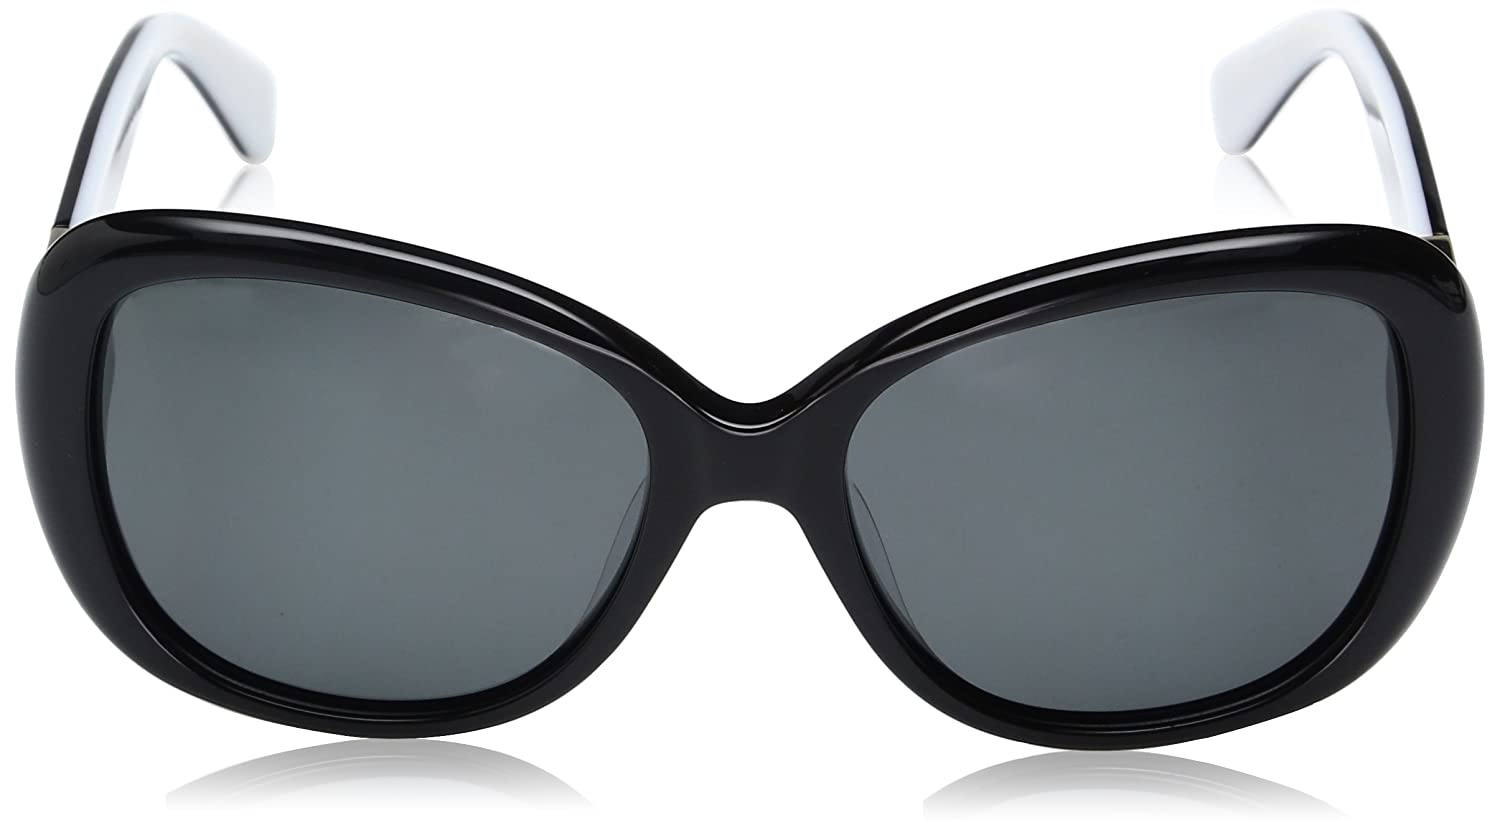 09a2c9718a6 Amazon.com  Kate Spade Women s Judyann p s Oval Sunglasses BLACK IVORY GRAY  POLARIZED 56 mm  Clothing